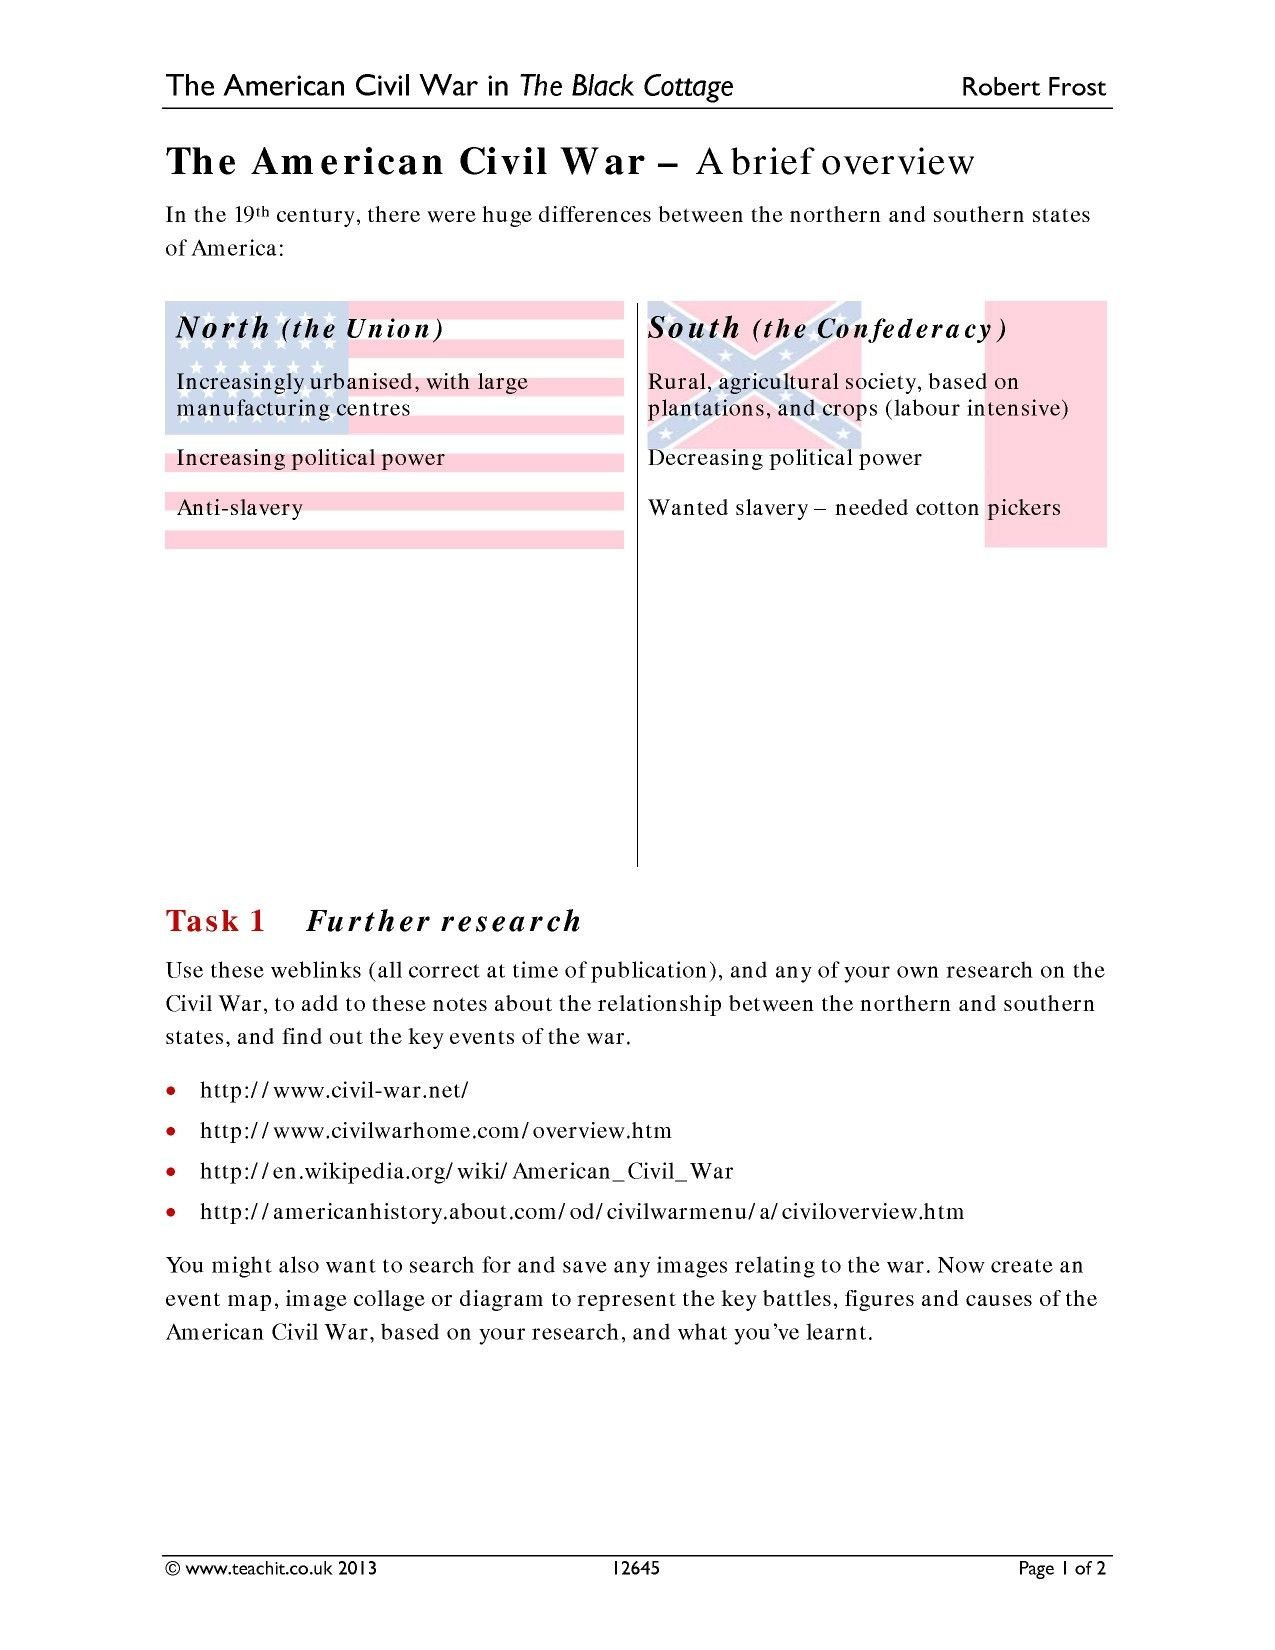 The Road To The Civil War Worksheet Answers  Briefencounters And The Road To The Civil War Worksheet Answers